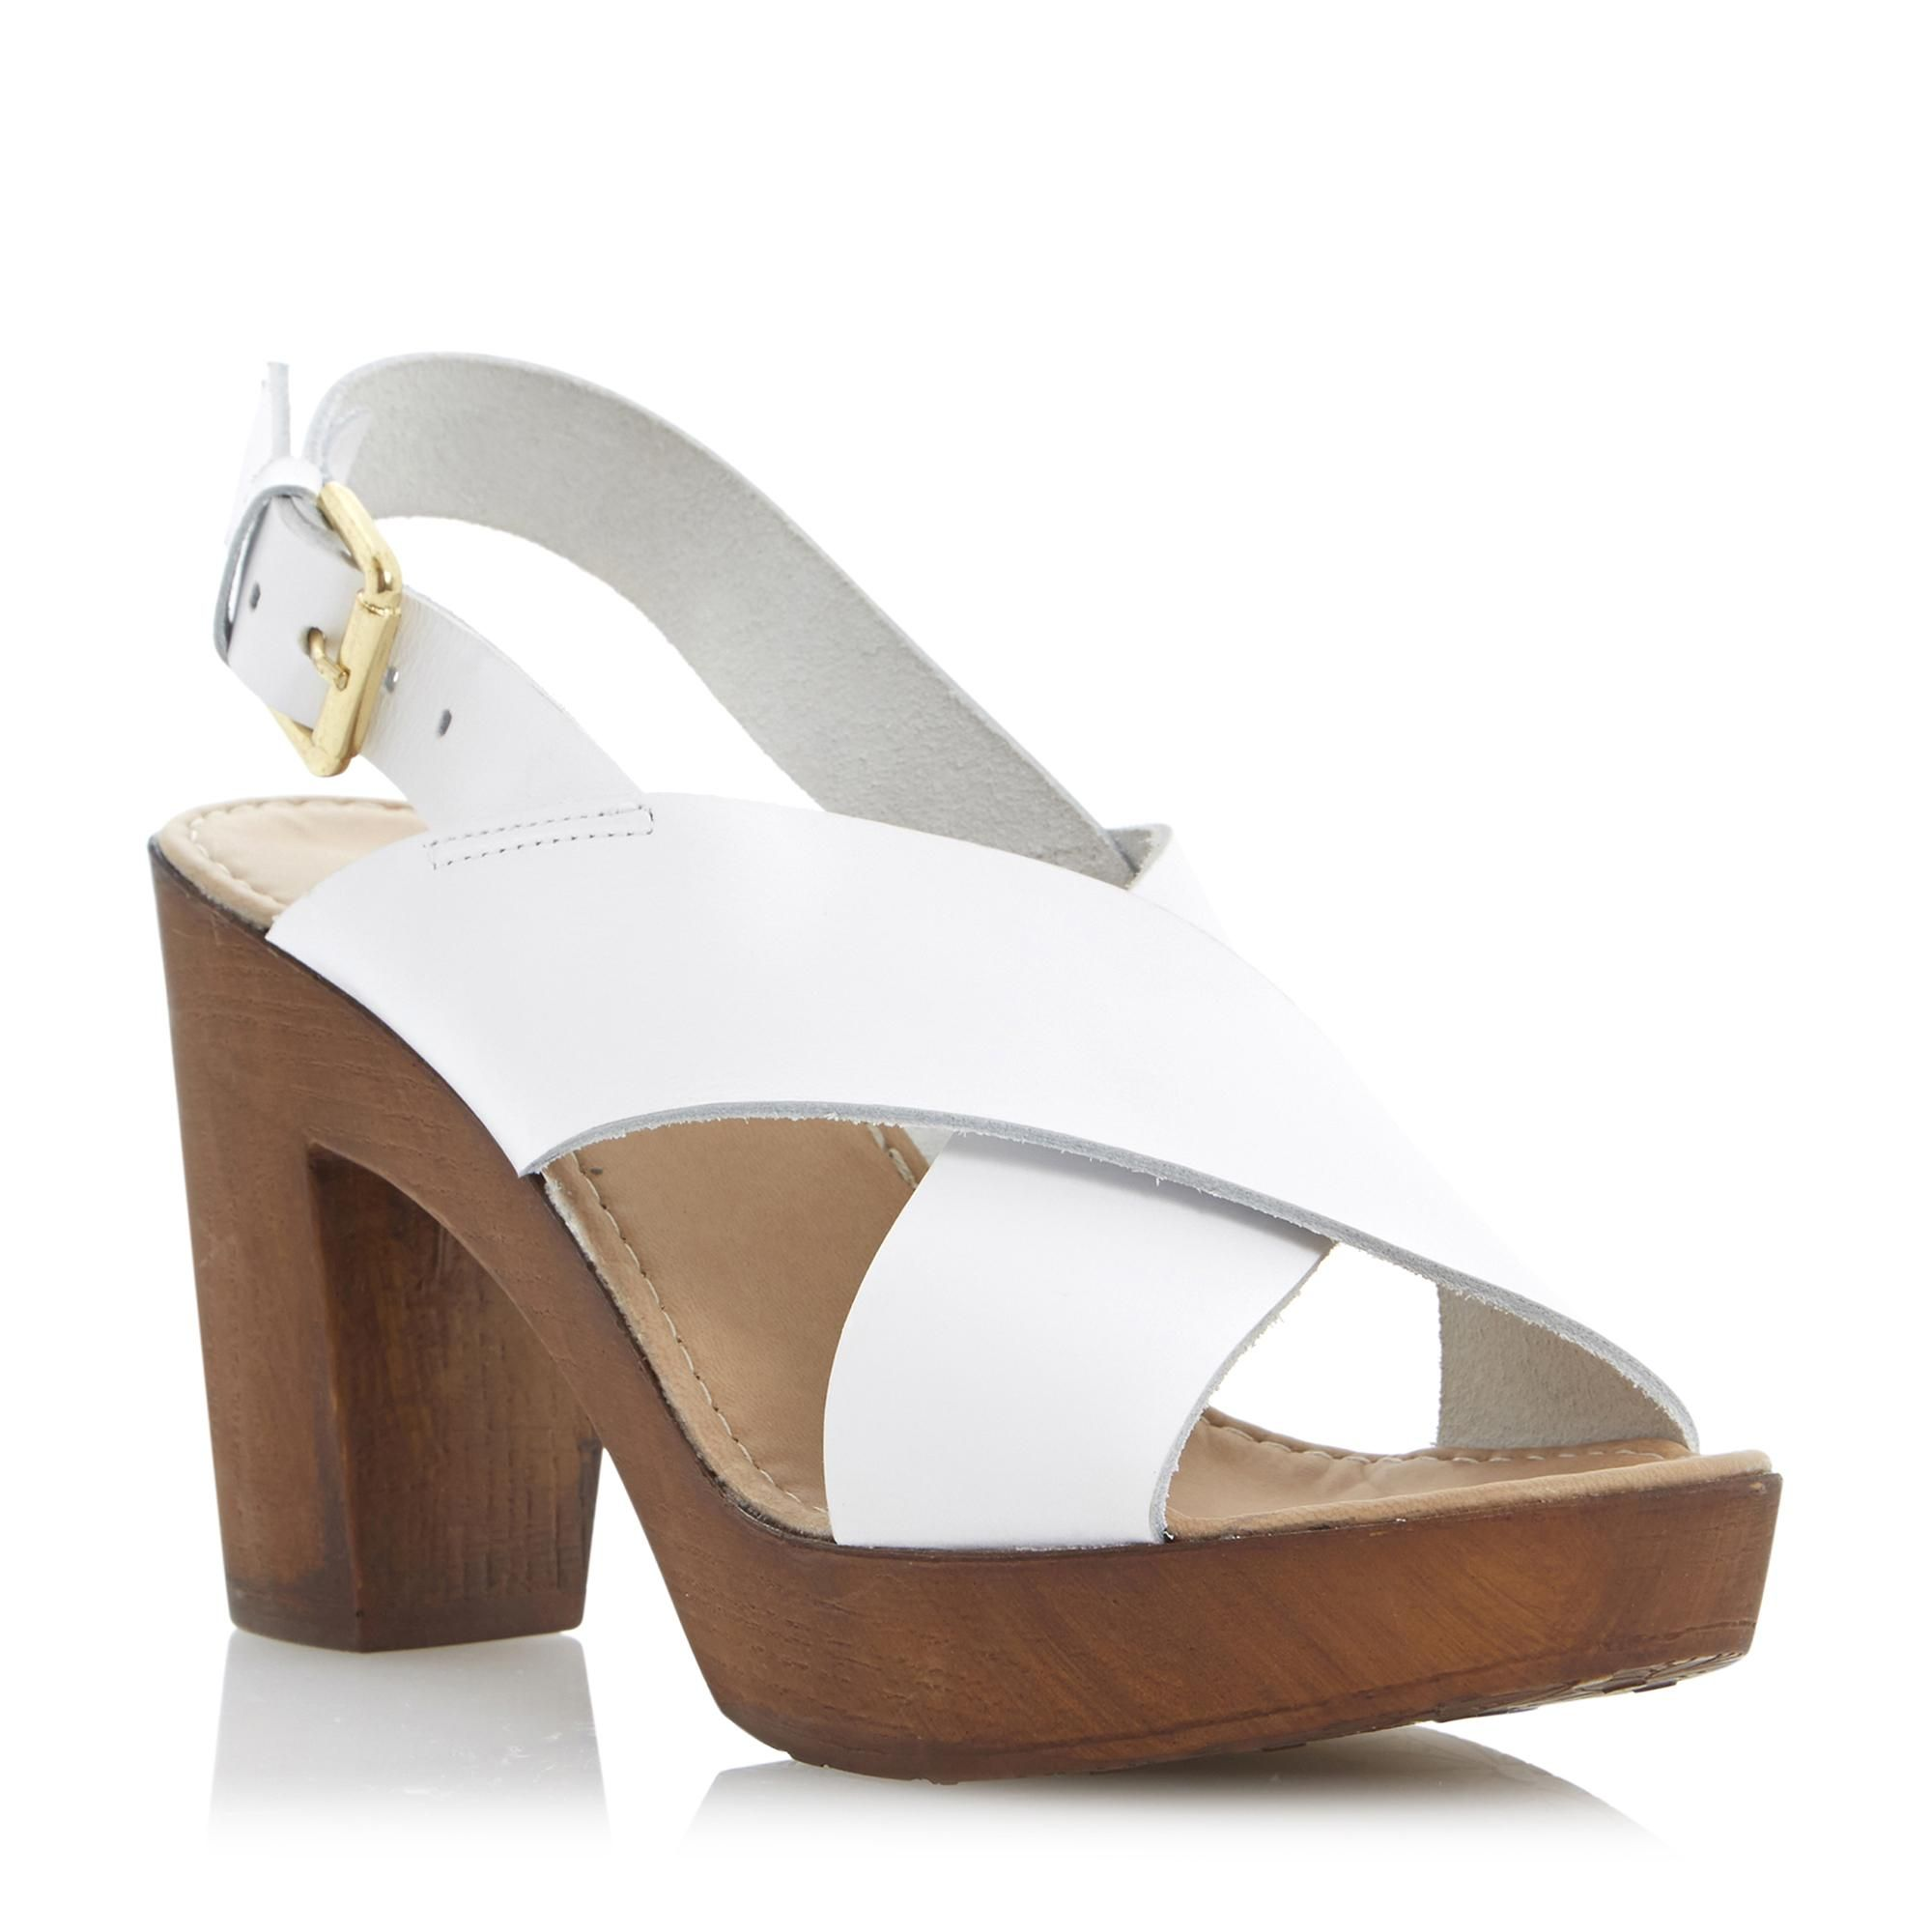 59950fdb8f0 DUNE LADIES FRAGGEL - Leather Wooden Clog Effect Heeled Sandal - white